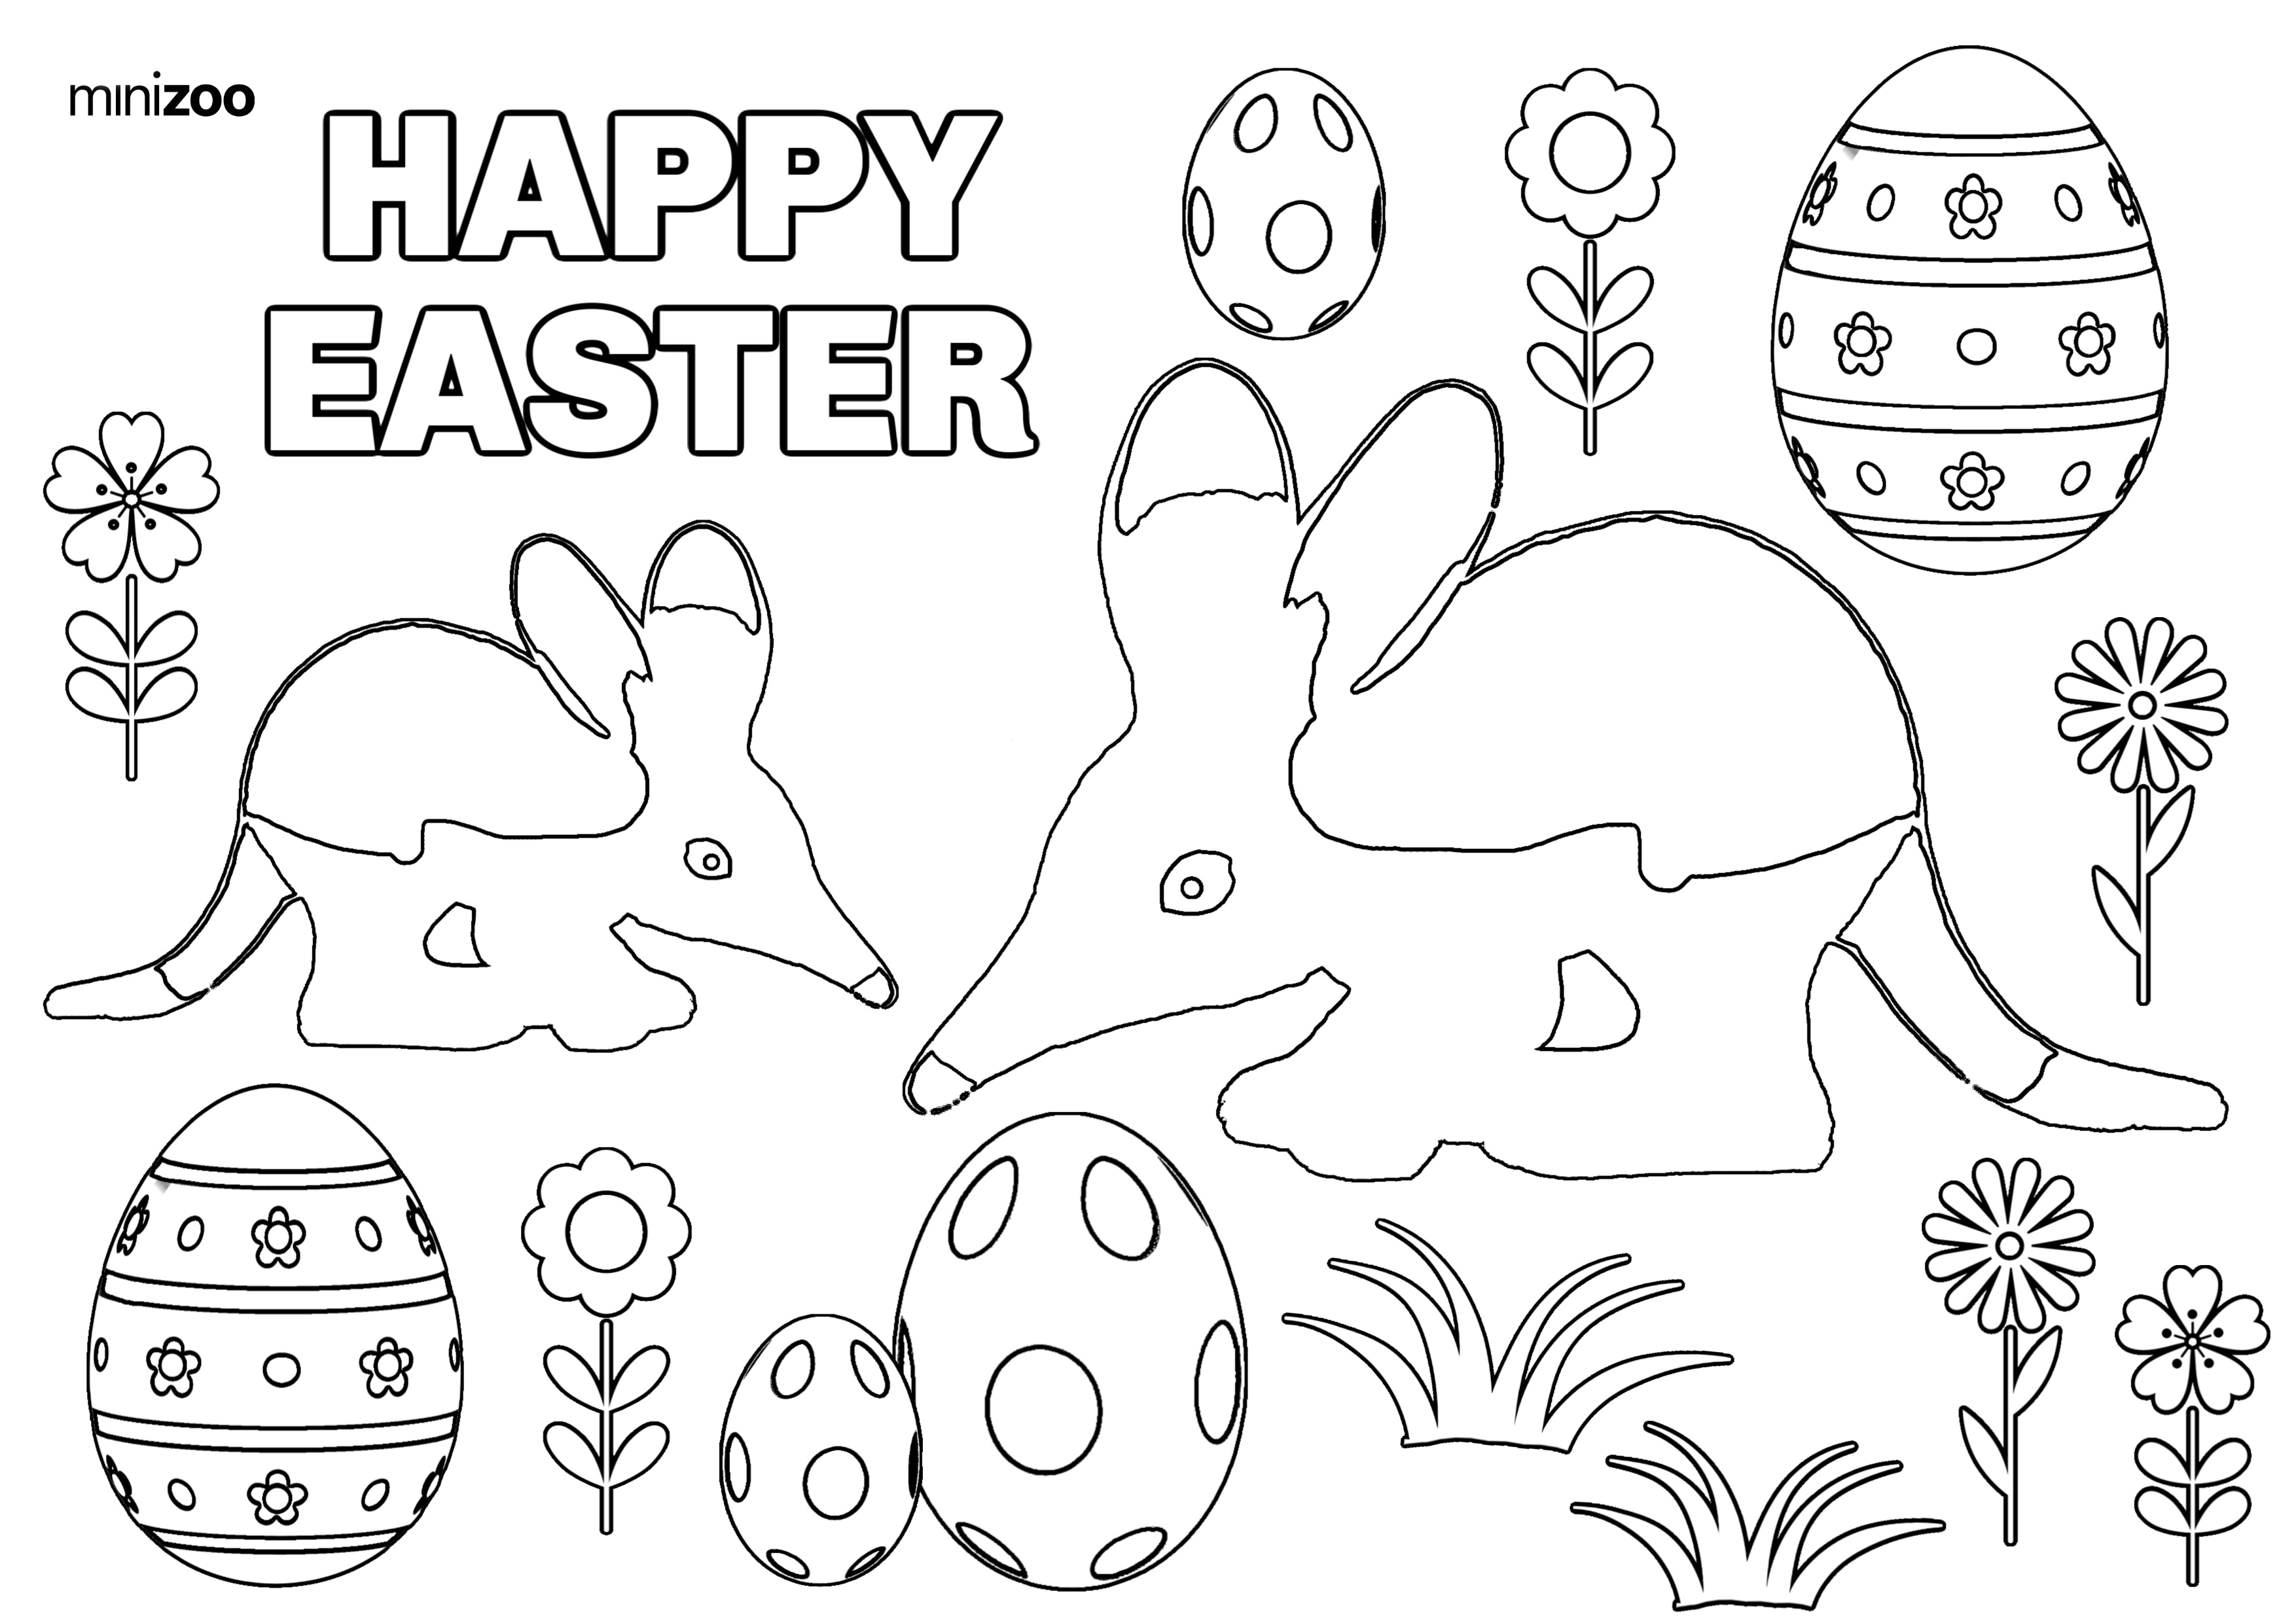 easter-bilby-colouring-page.jpg